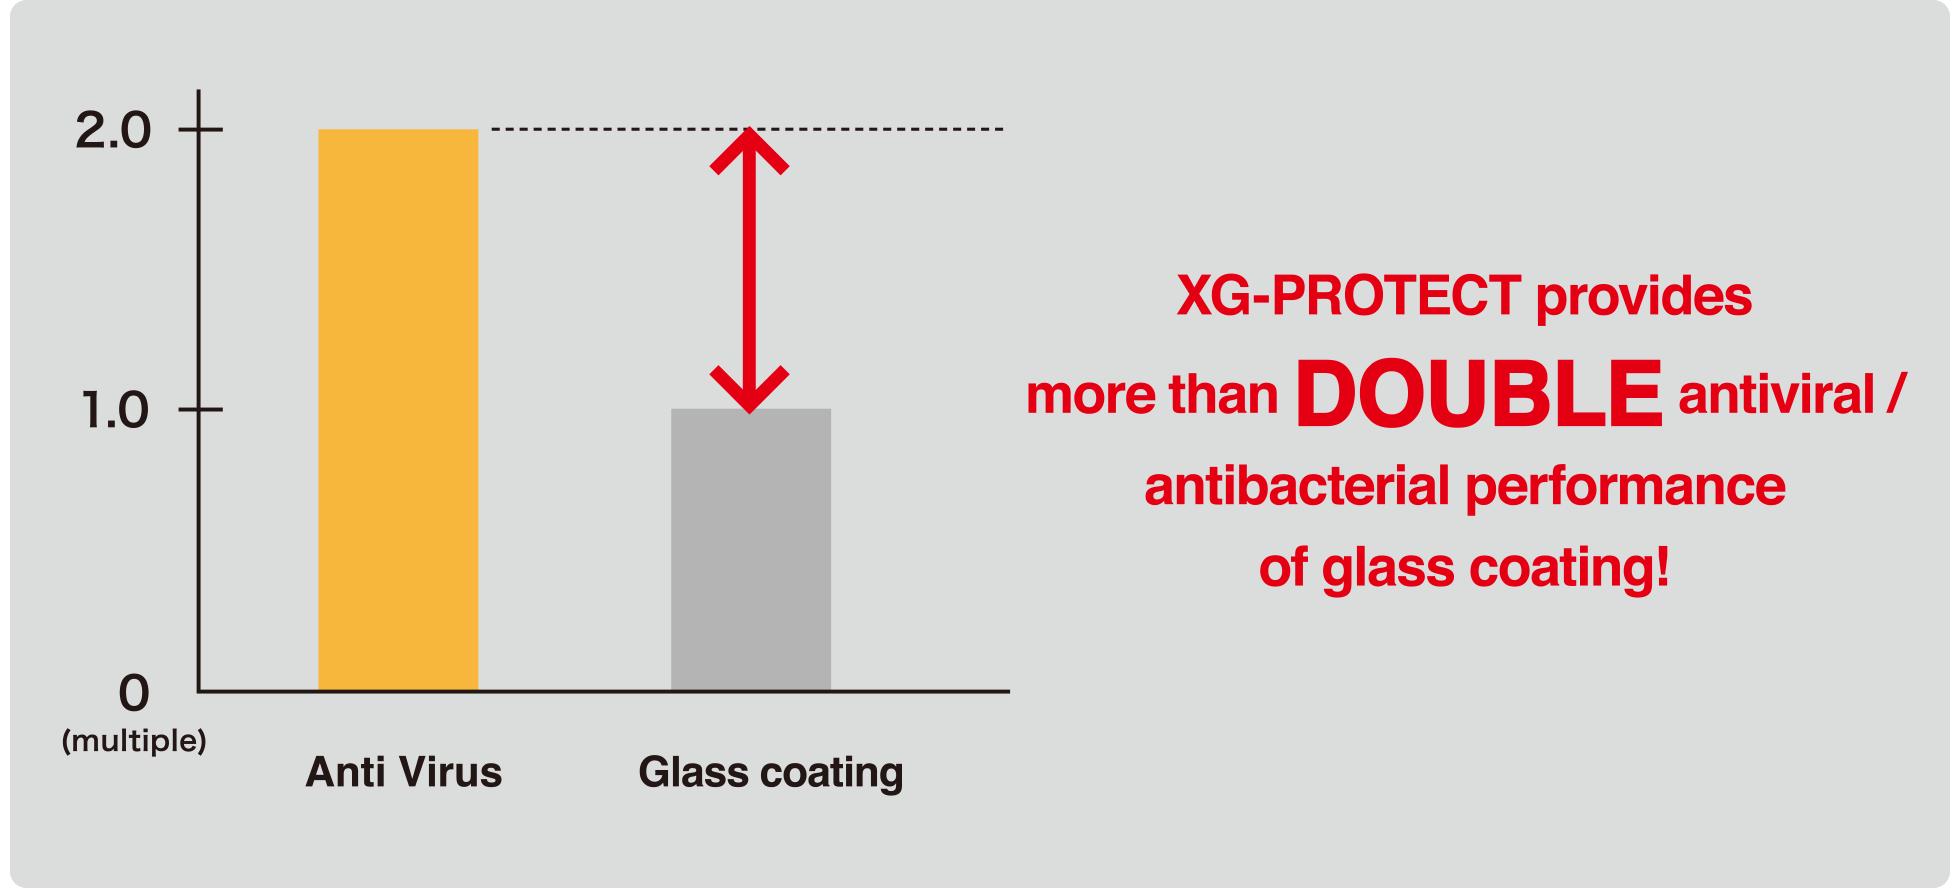 Antiviral / Antibacterial performance comparison with glass coating